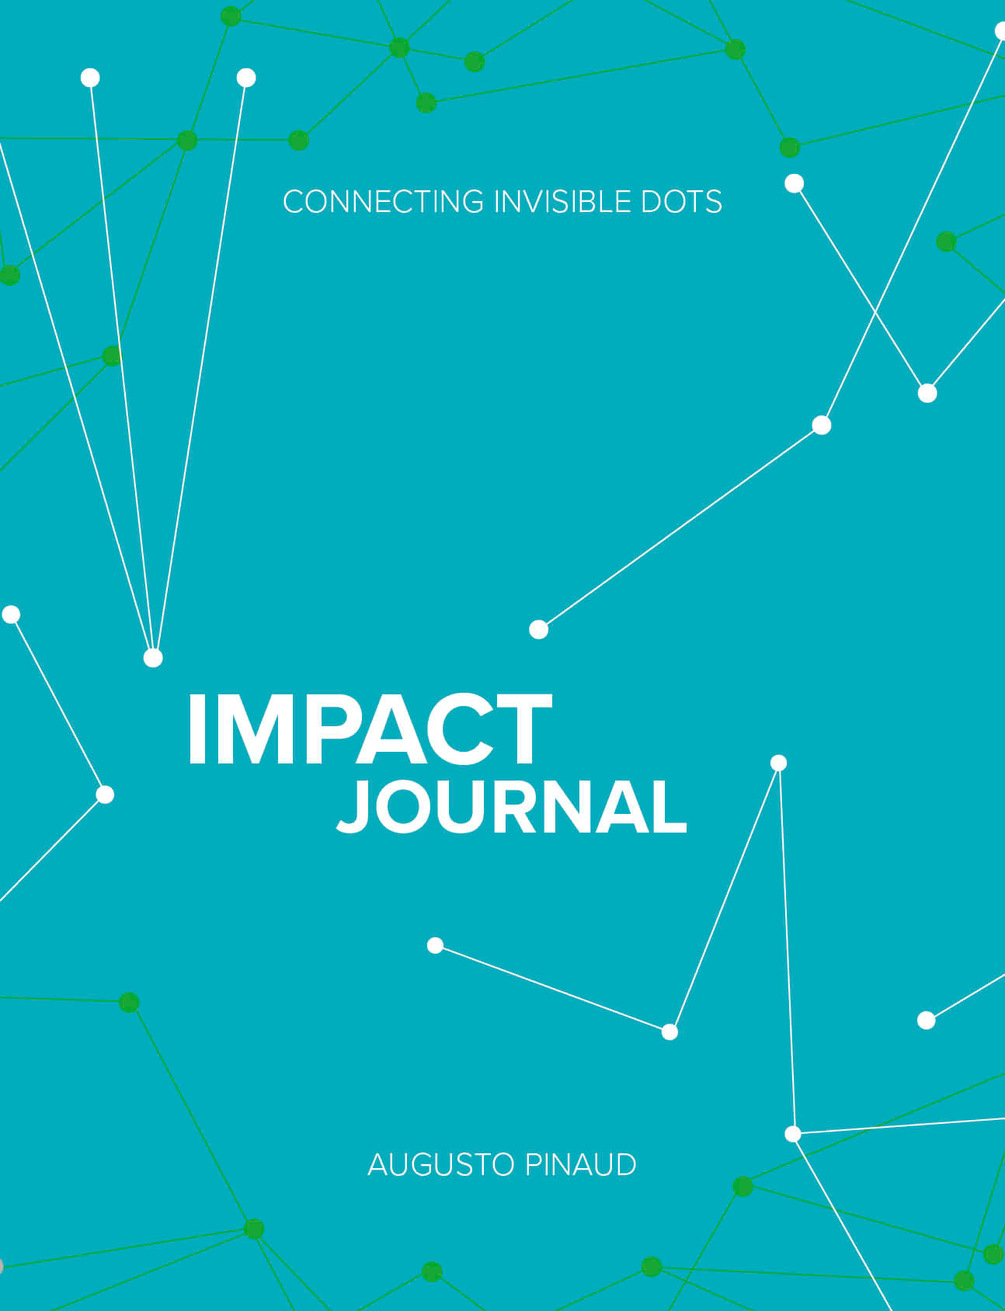 GTD NYC Presentation — The Impact Journal